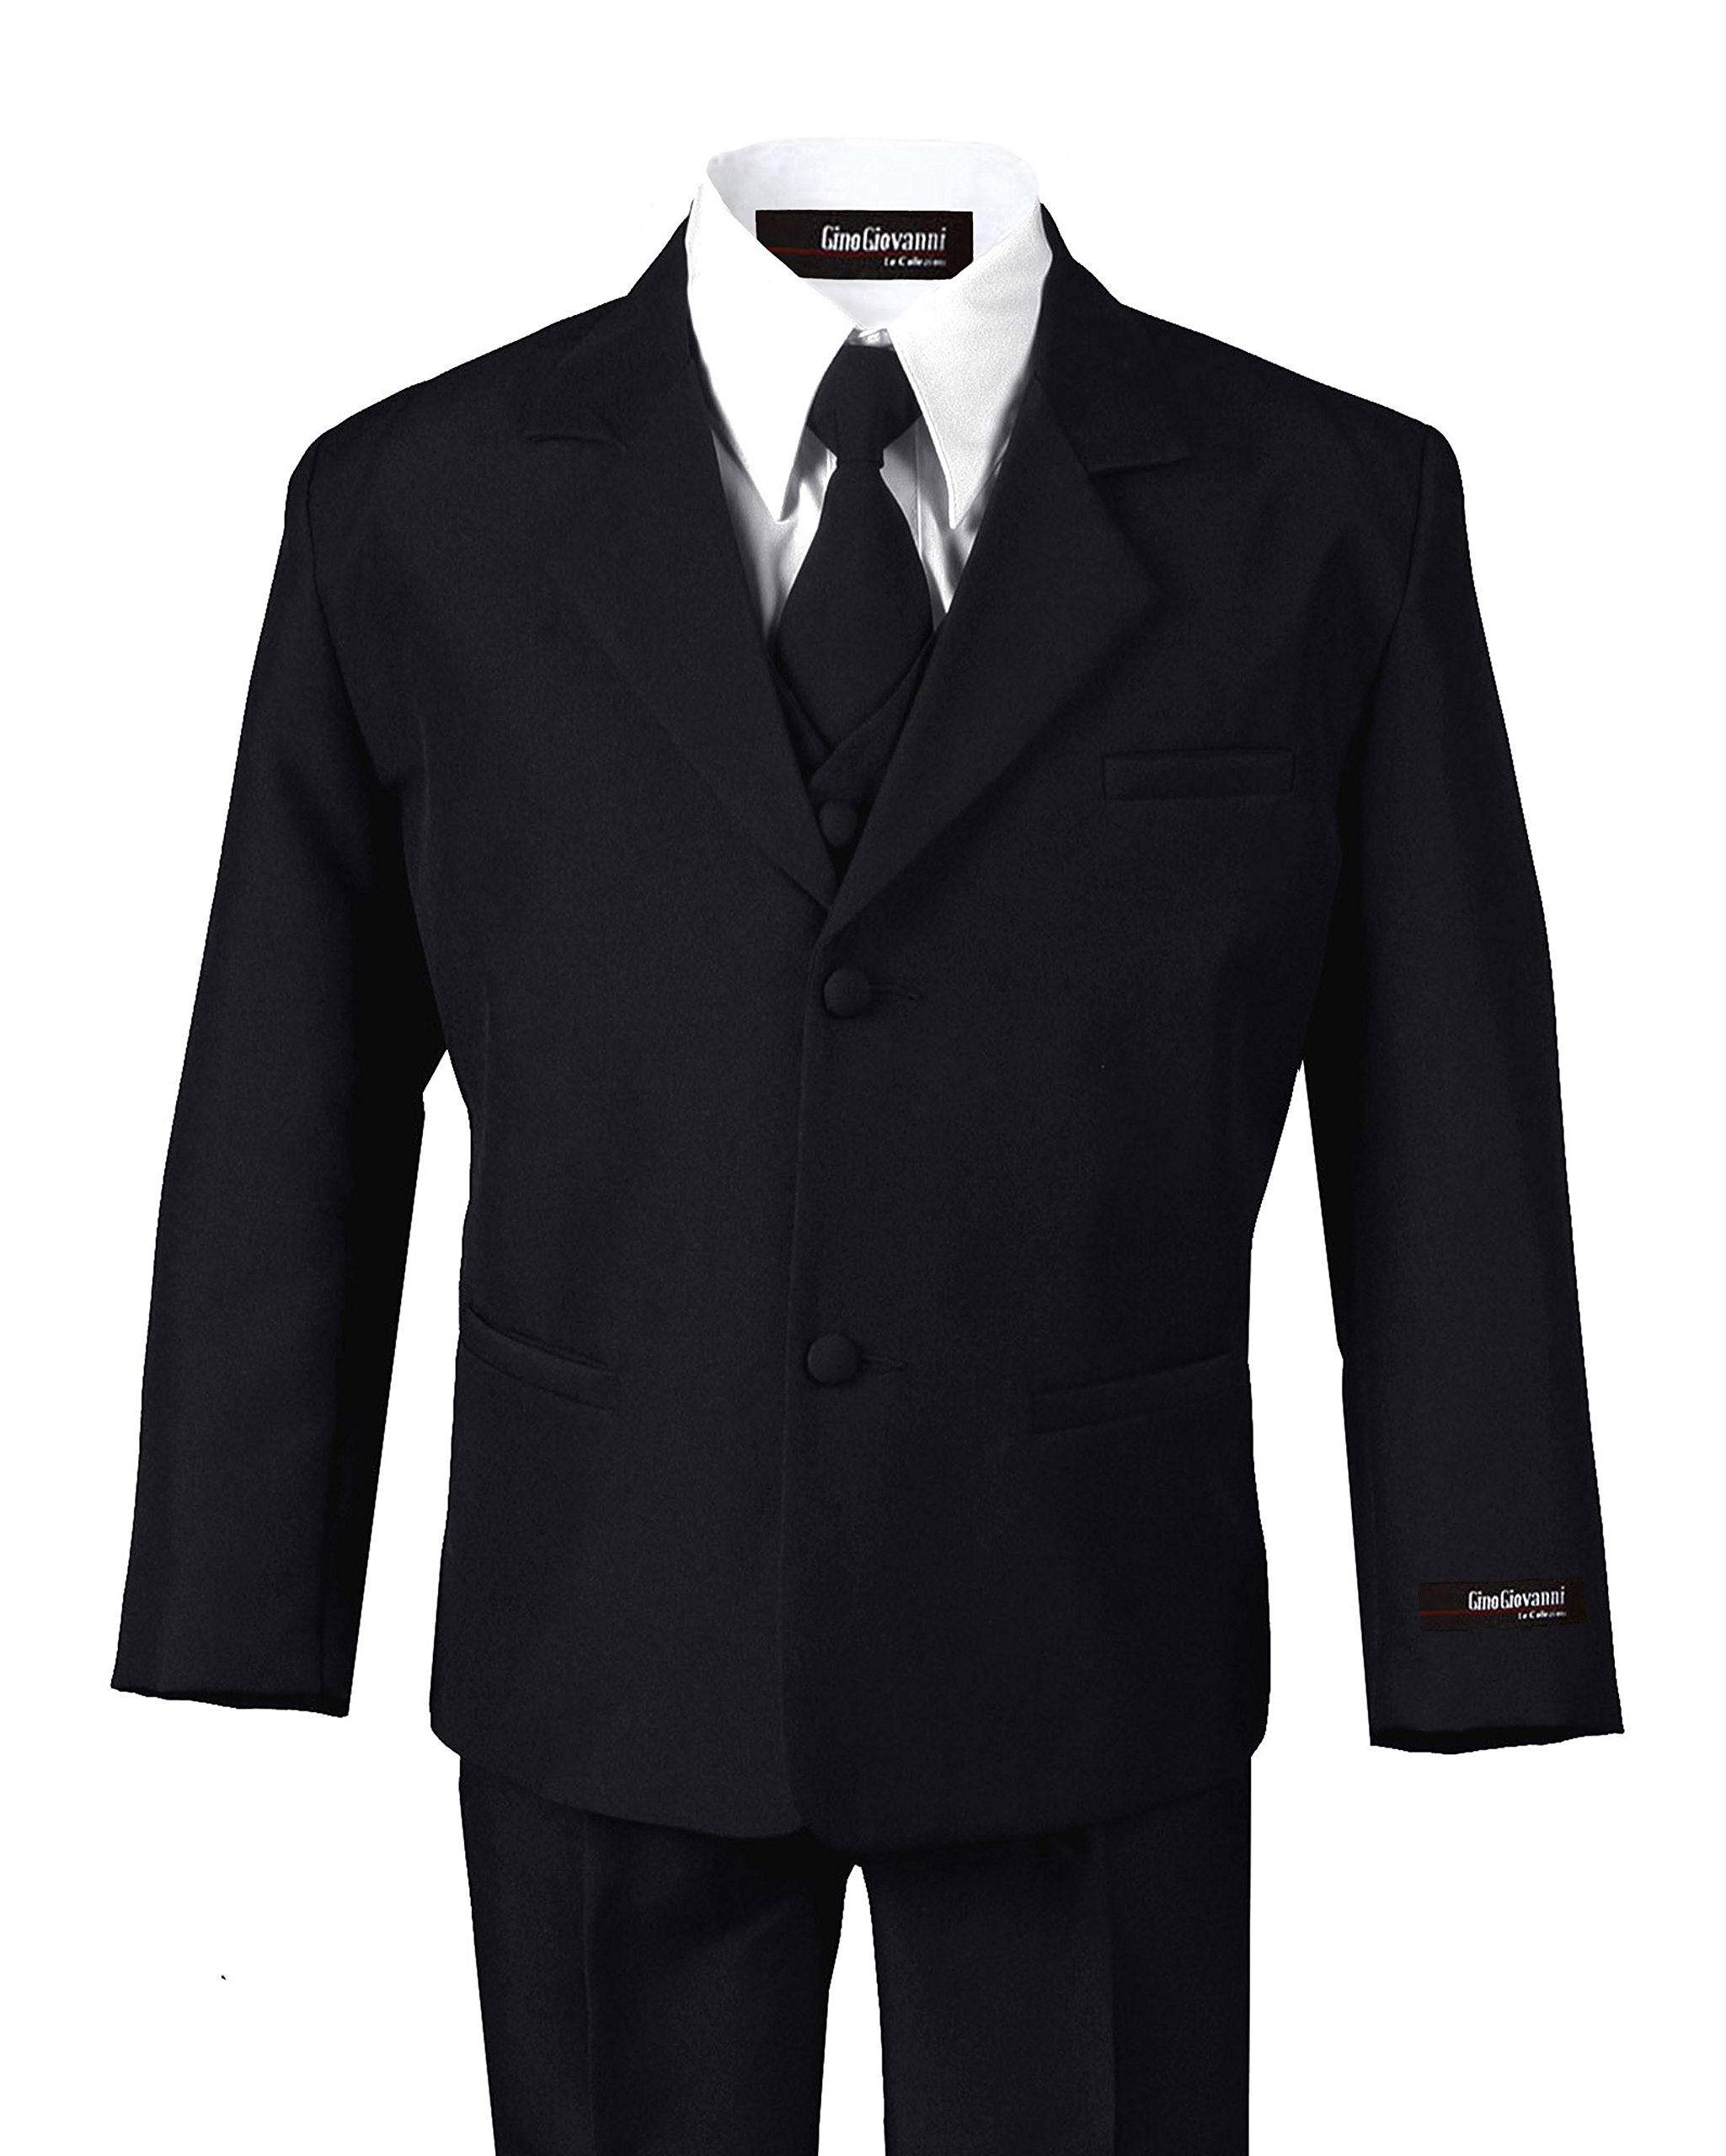 US Fairytailes Formal Boy Black Suit from Baby to Teen (12)